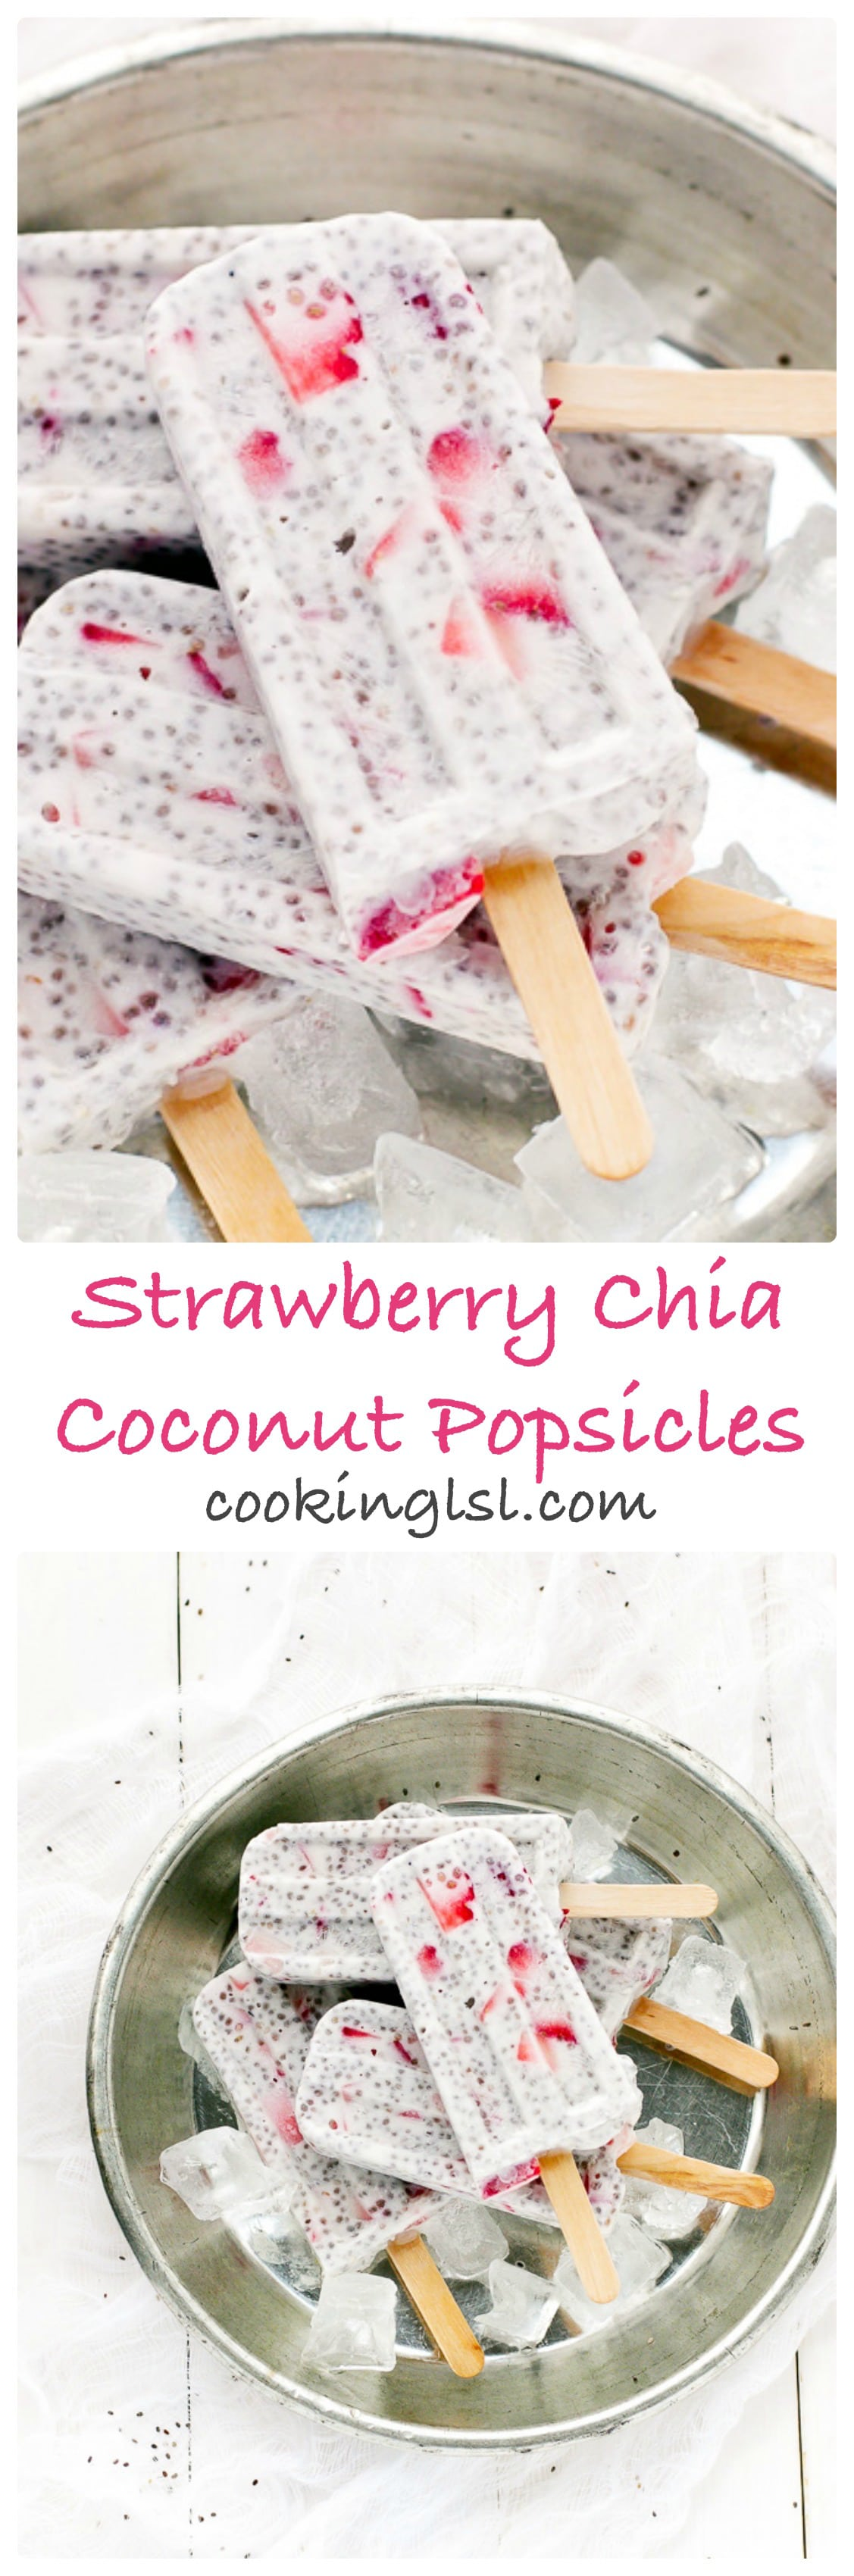 Strawberry-Chia-Coconut-Popsicles-recipe